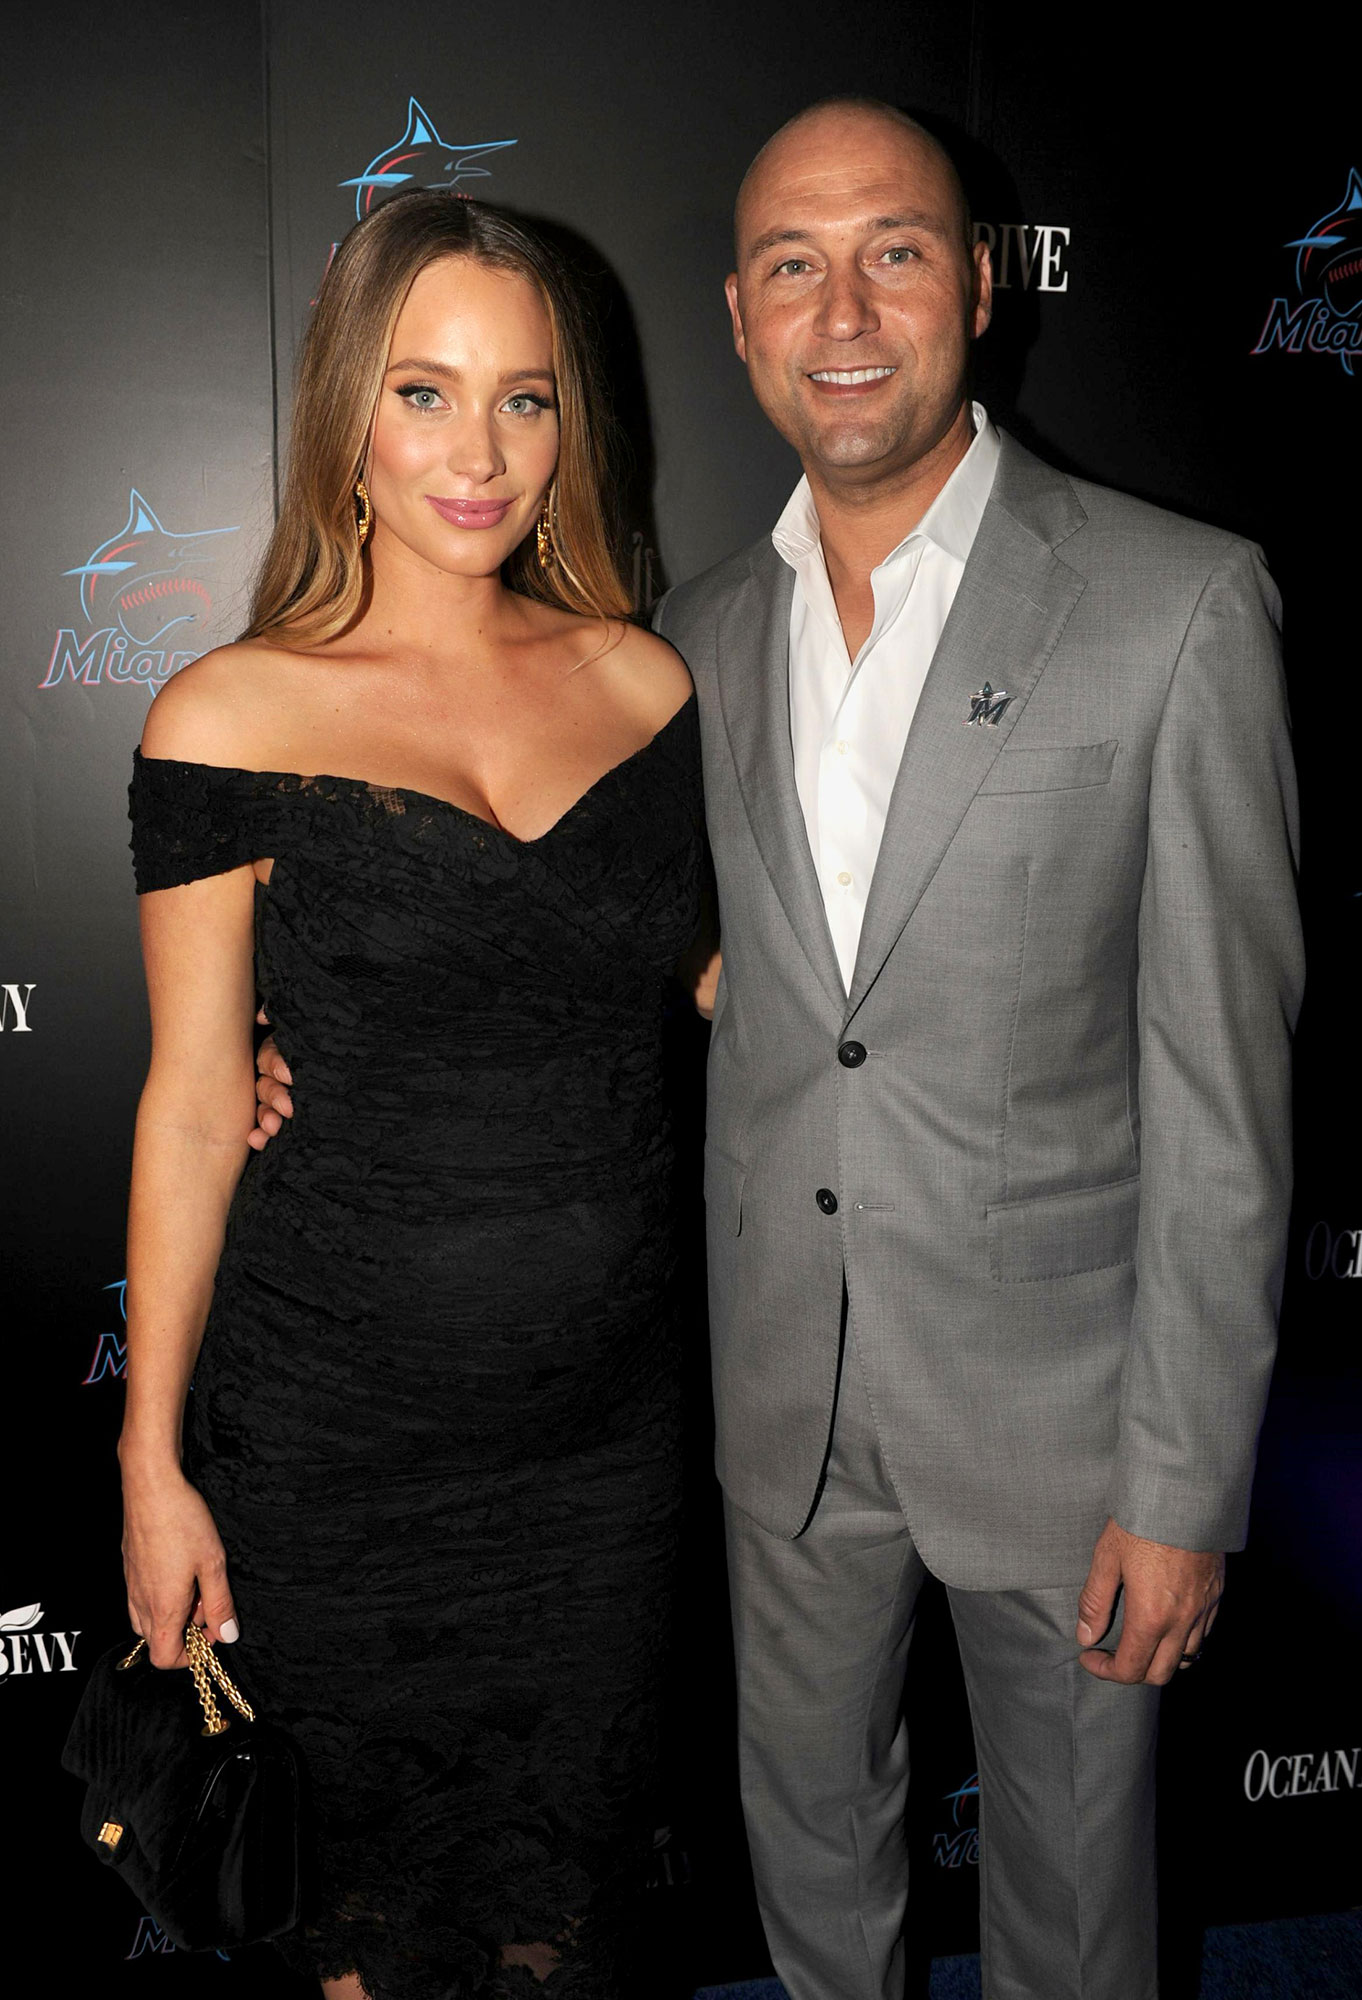 November Issue Release Celebration hosted by Derek Jeter at Swan and Bar Bevy